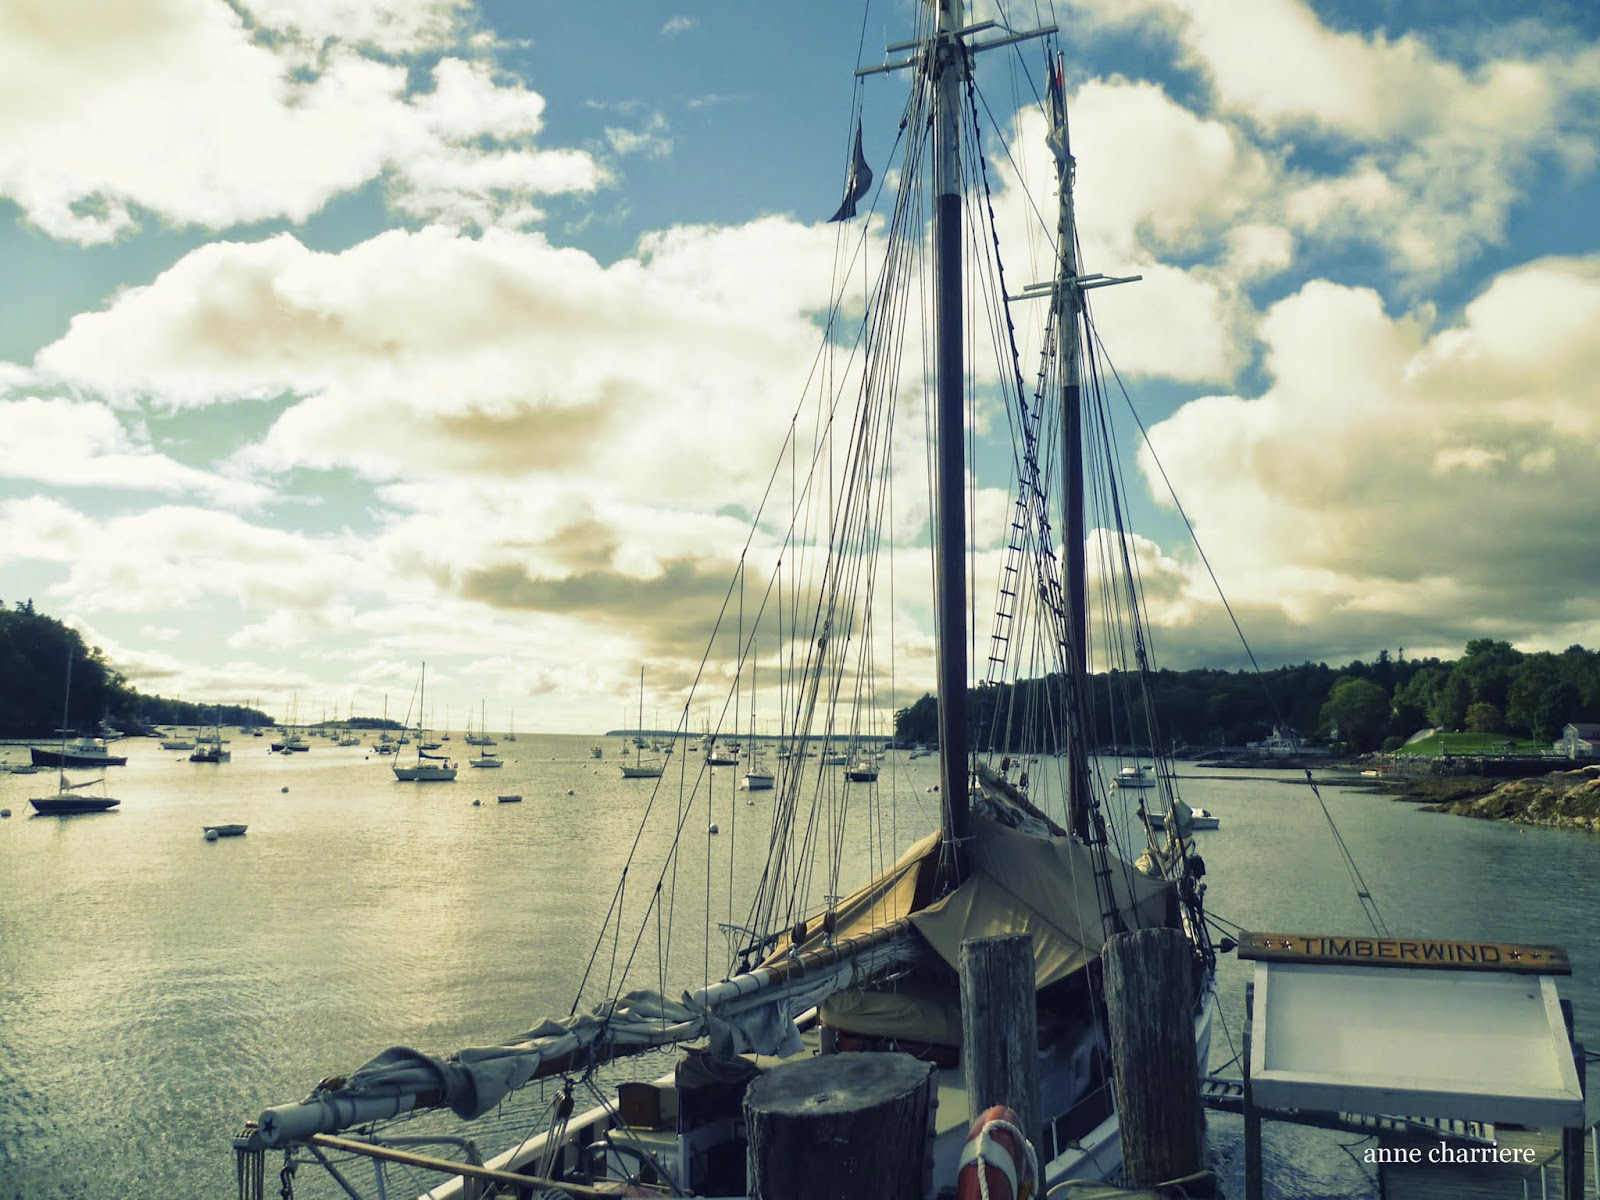 anne charriere voyage, new england, maine, travel photography,